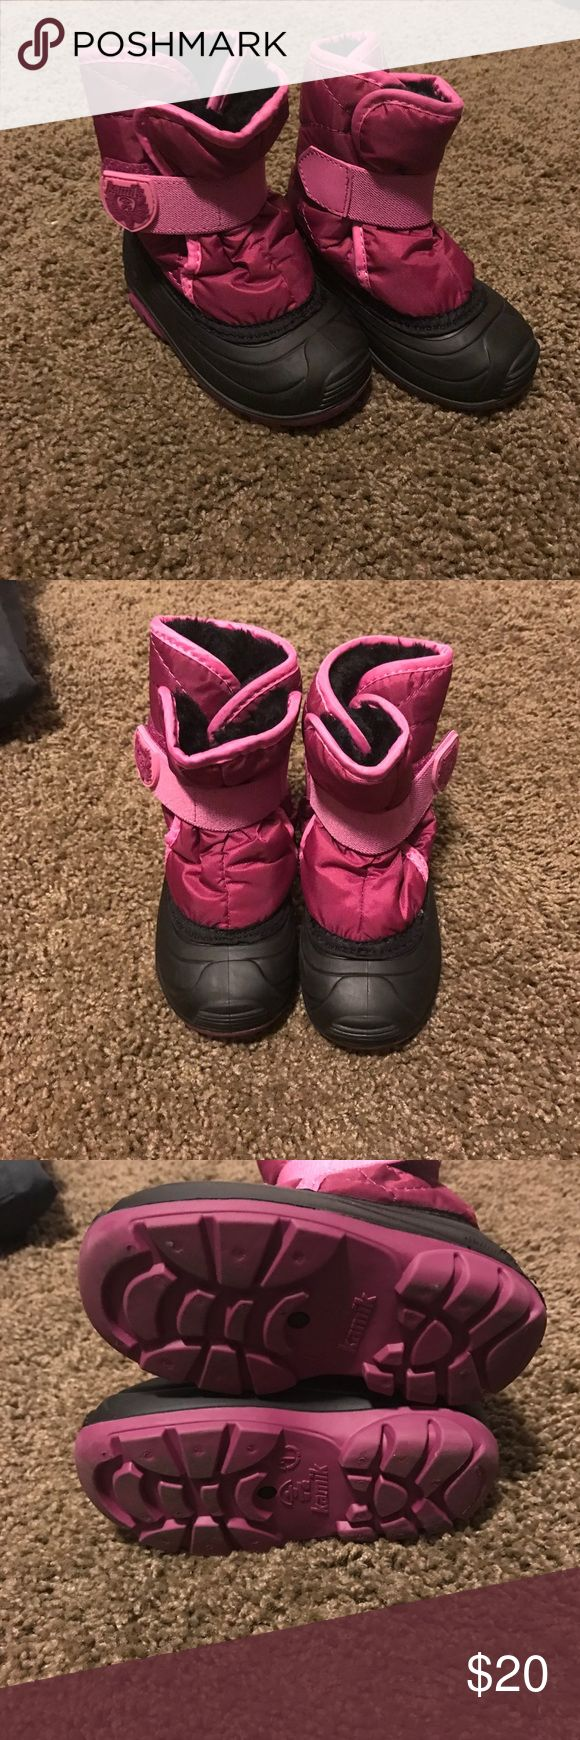 Kamik pink snow boots Snow boots only worn twice. Kamik Shoes Rain & Snow Boots